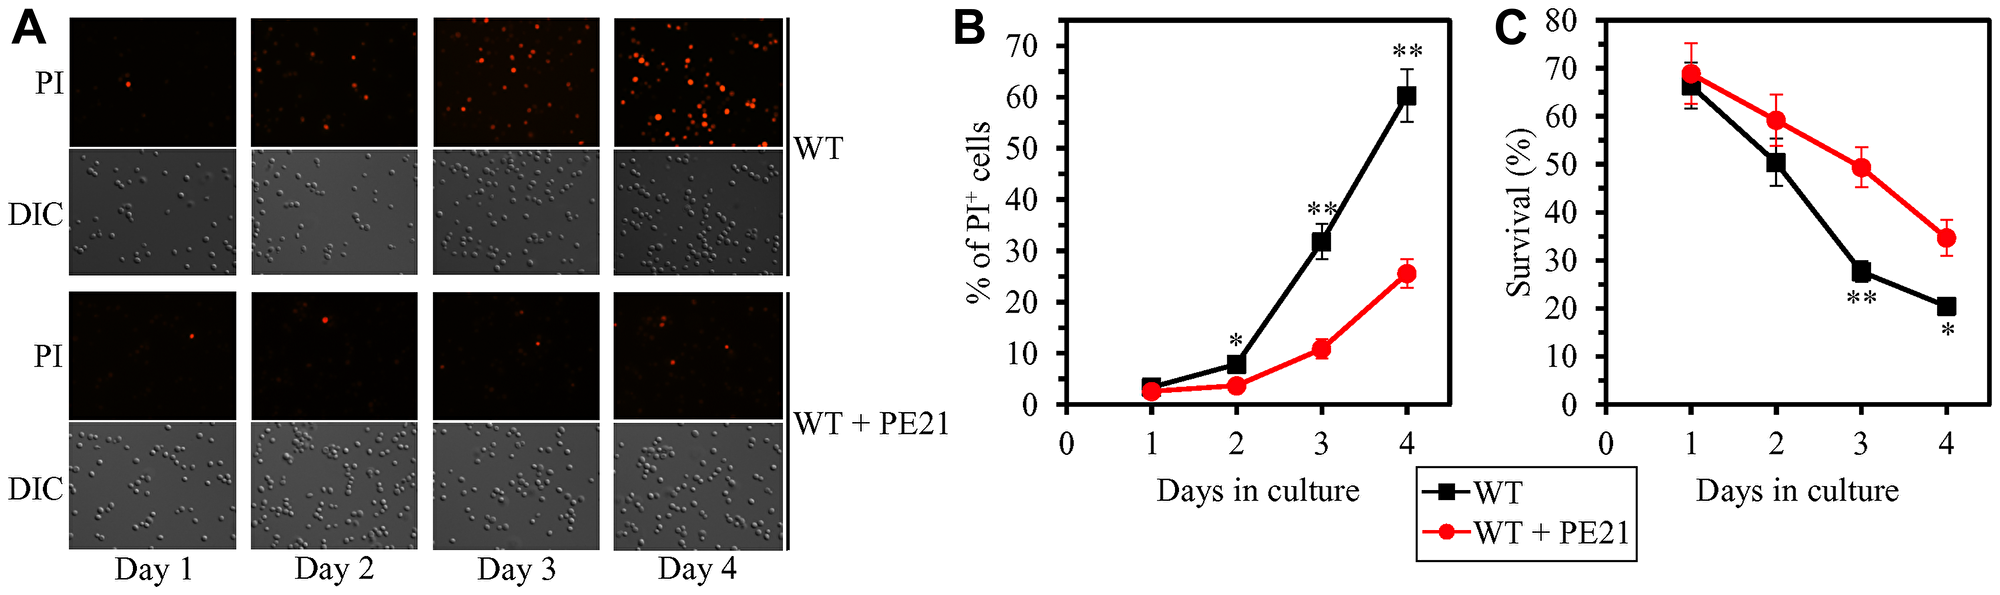 PE21 delays an age-related onset of necrotic death in yeast cells, decelerates the progression of the necrotic cell death process, and makes yeast less susceptible to a liponecrotic mode of regulated cell death (RCD).